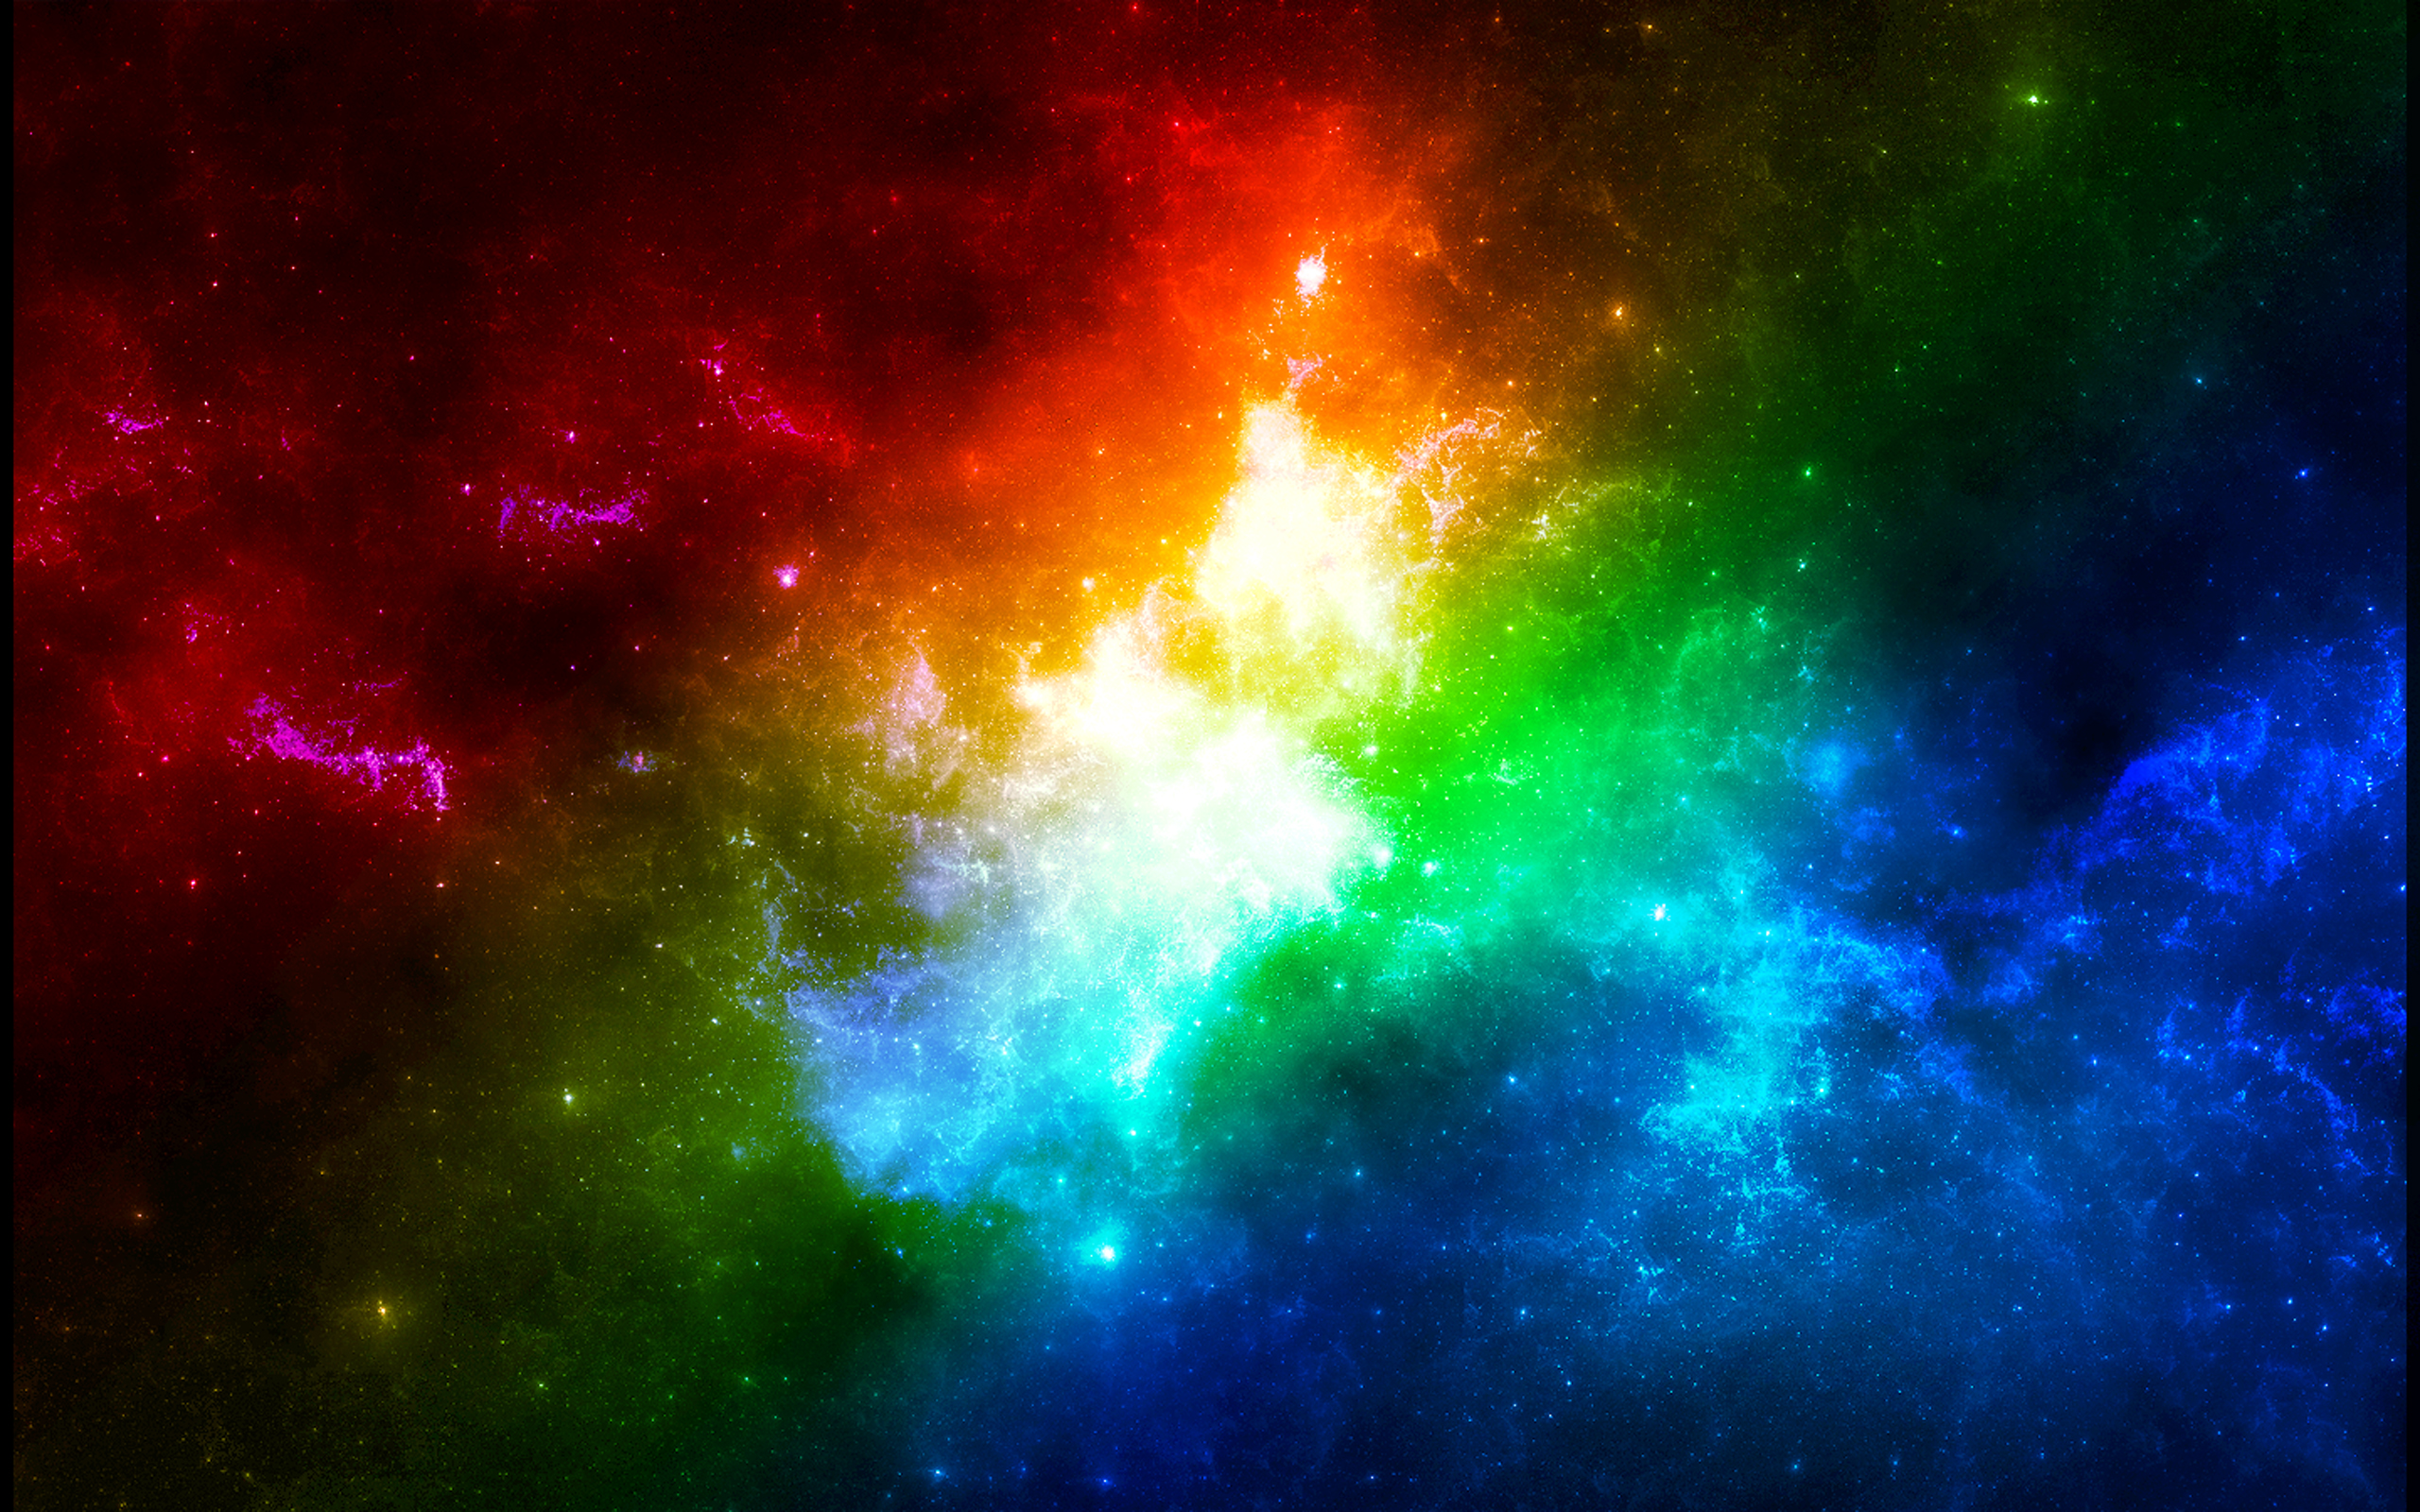 Space Colorful Wallpapers 762.36 Kb